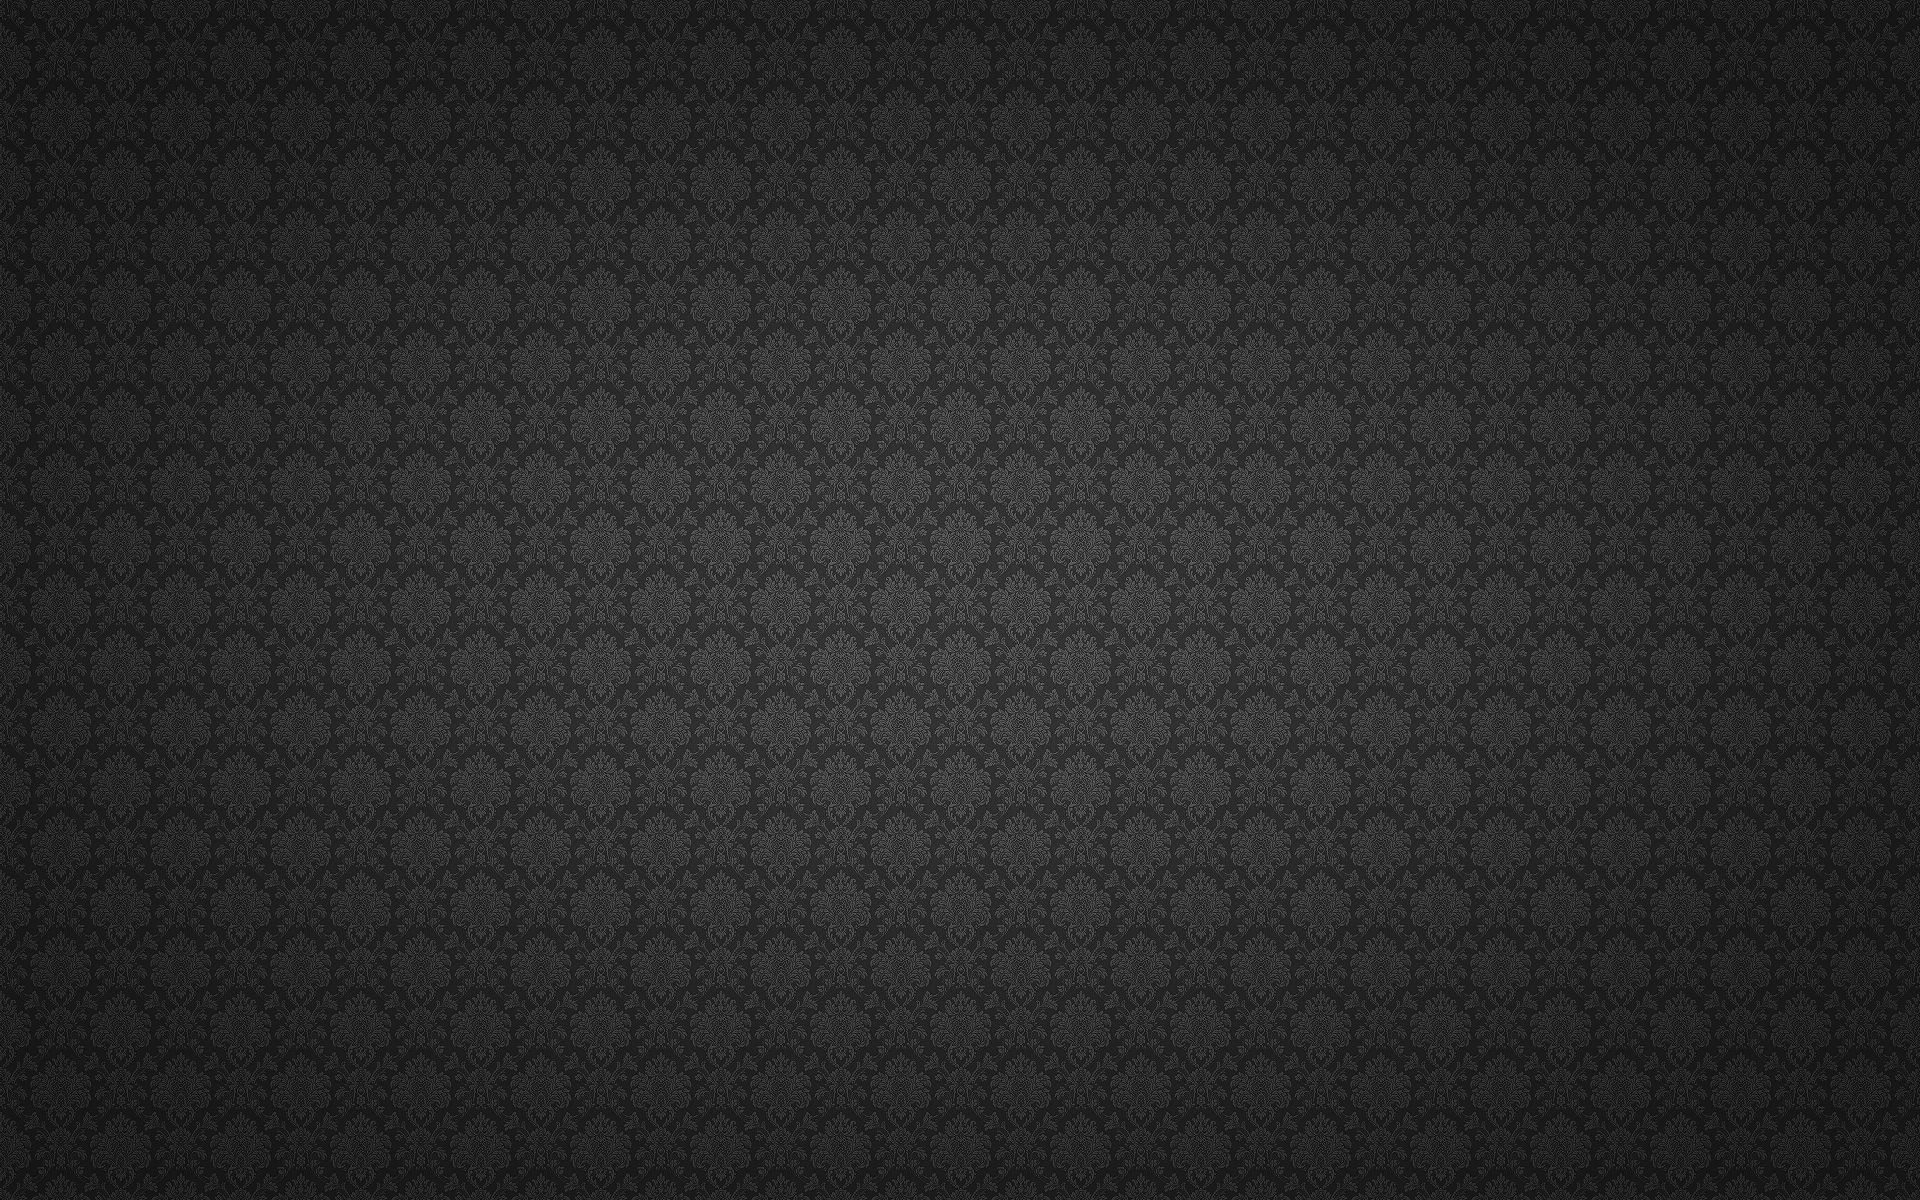 Arch Linux Linux Dark Gray Wallpapers Hd Desktop And Mobile Hd